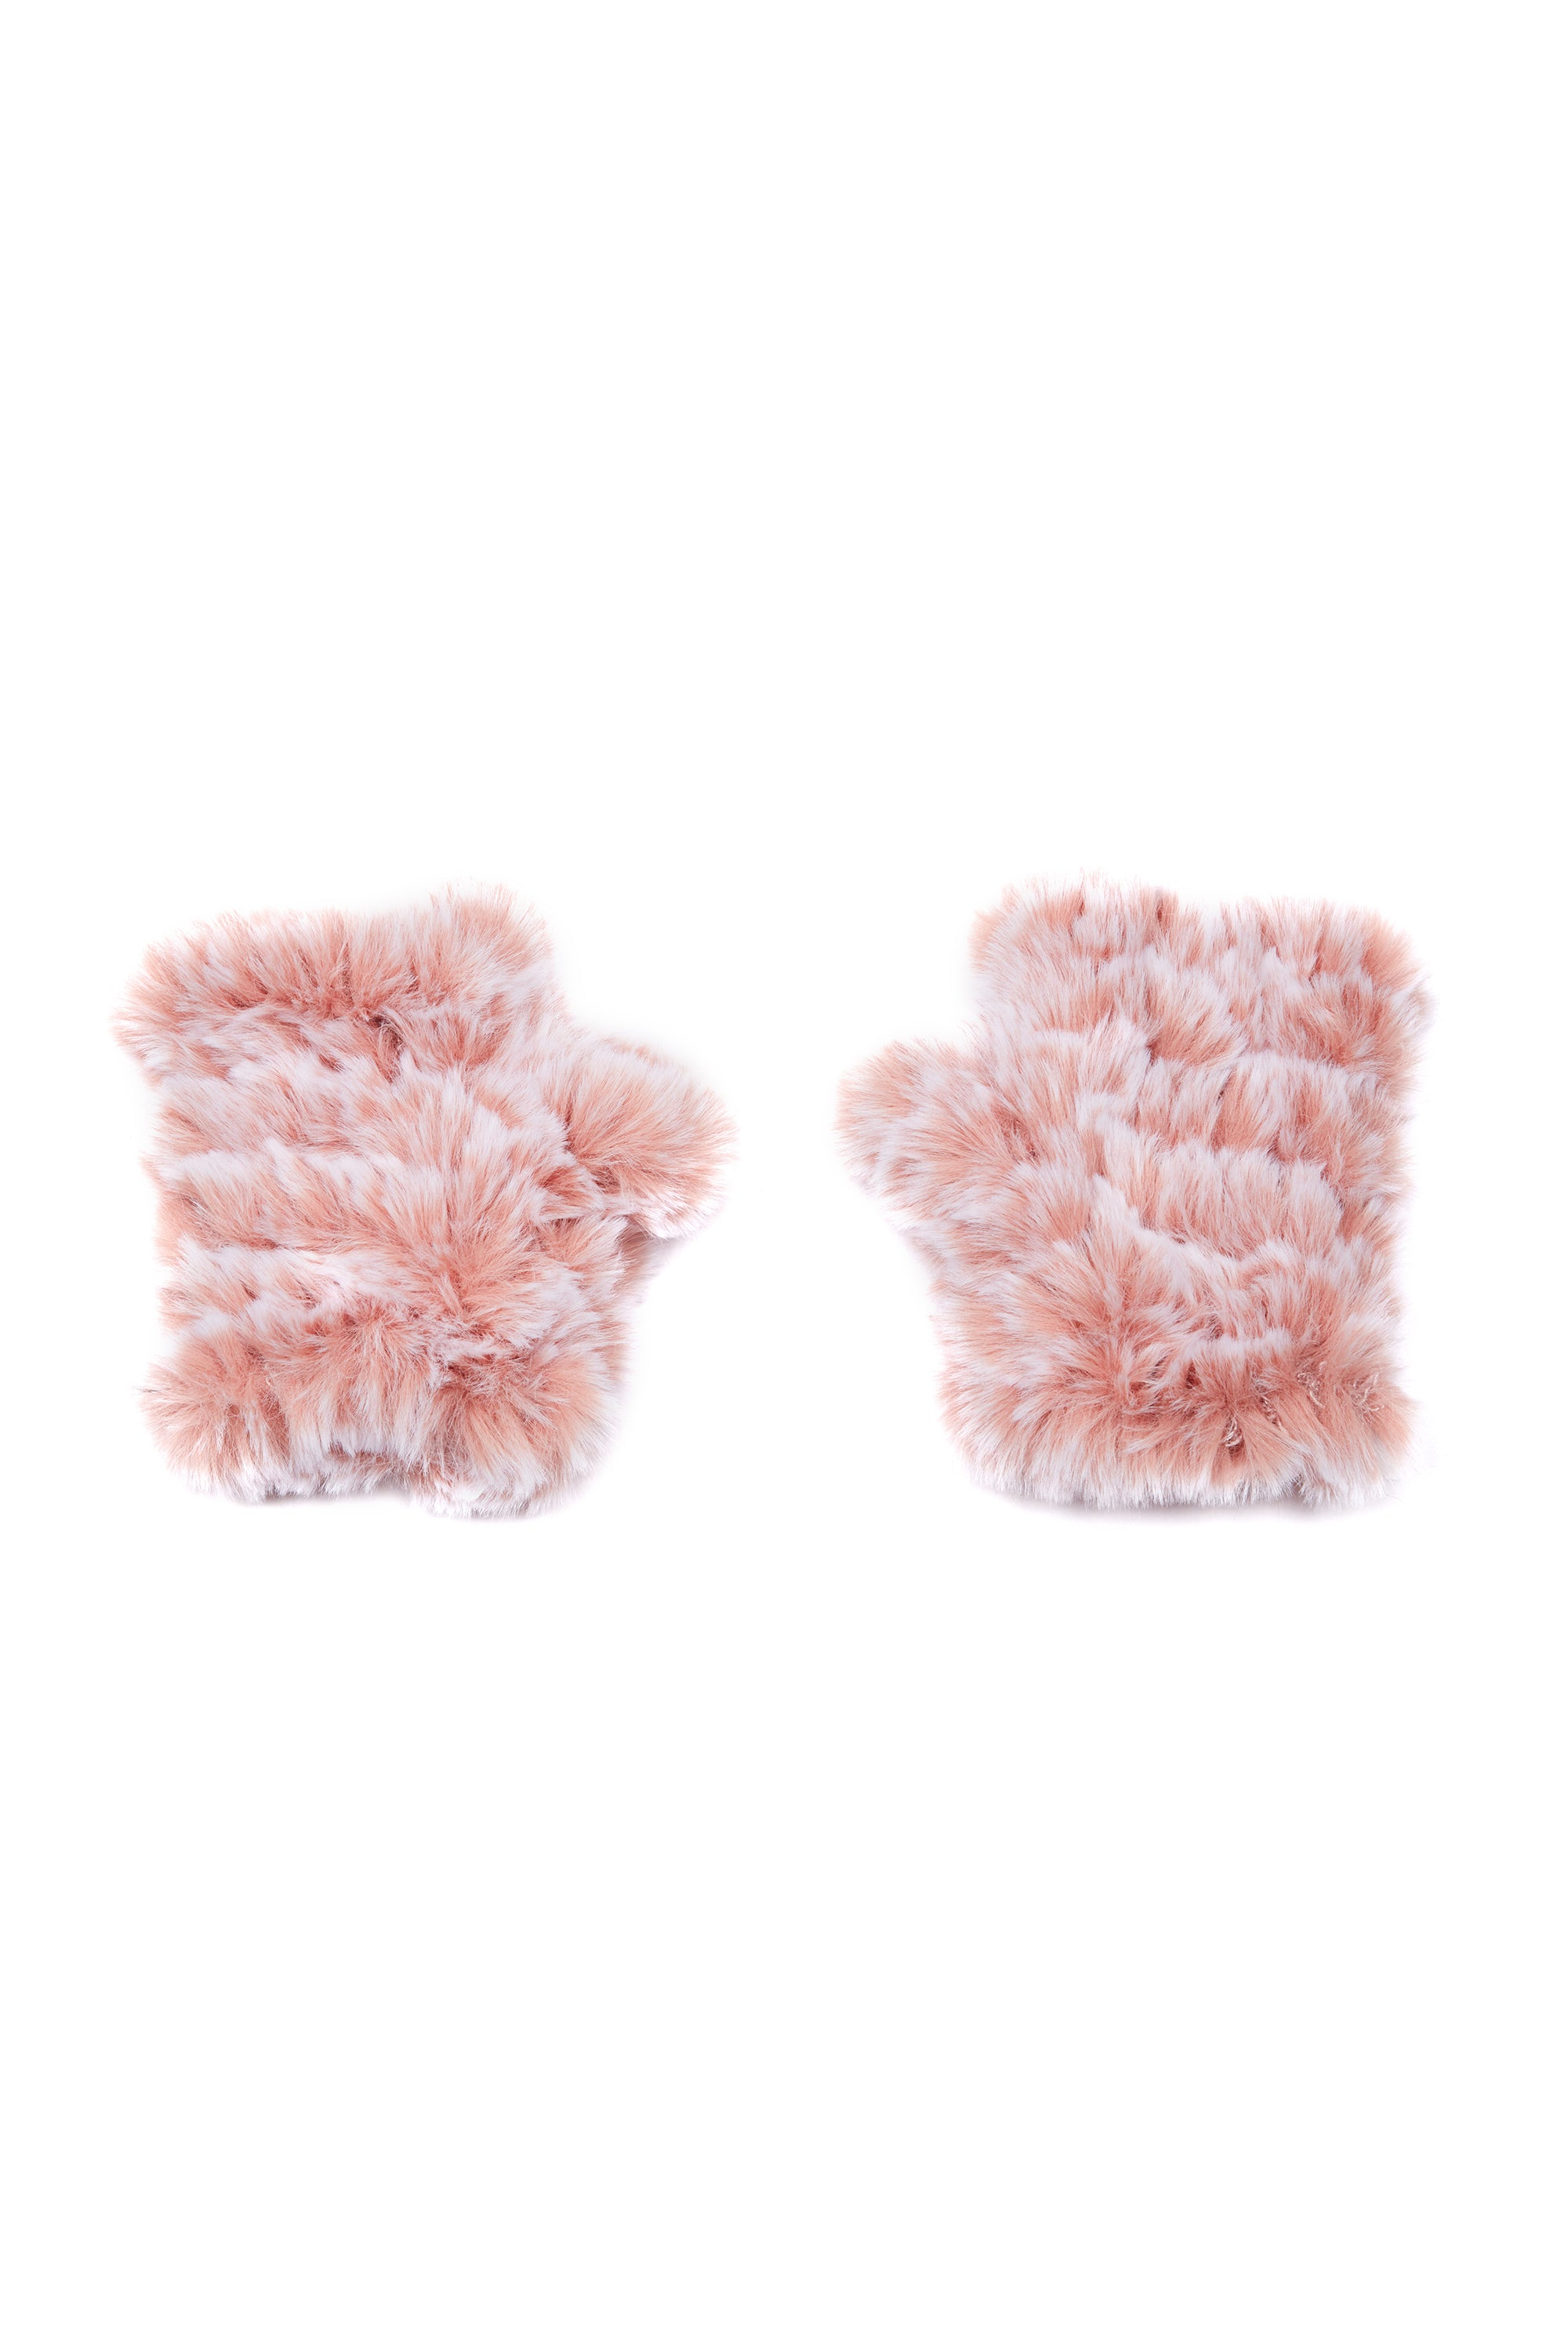 The Mandy Mitten - Faux Fur - Blush